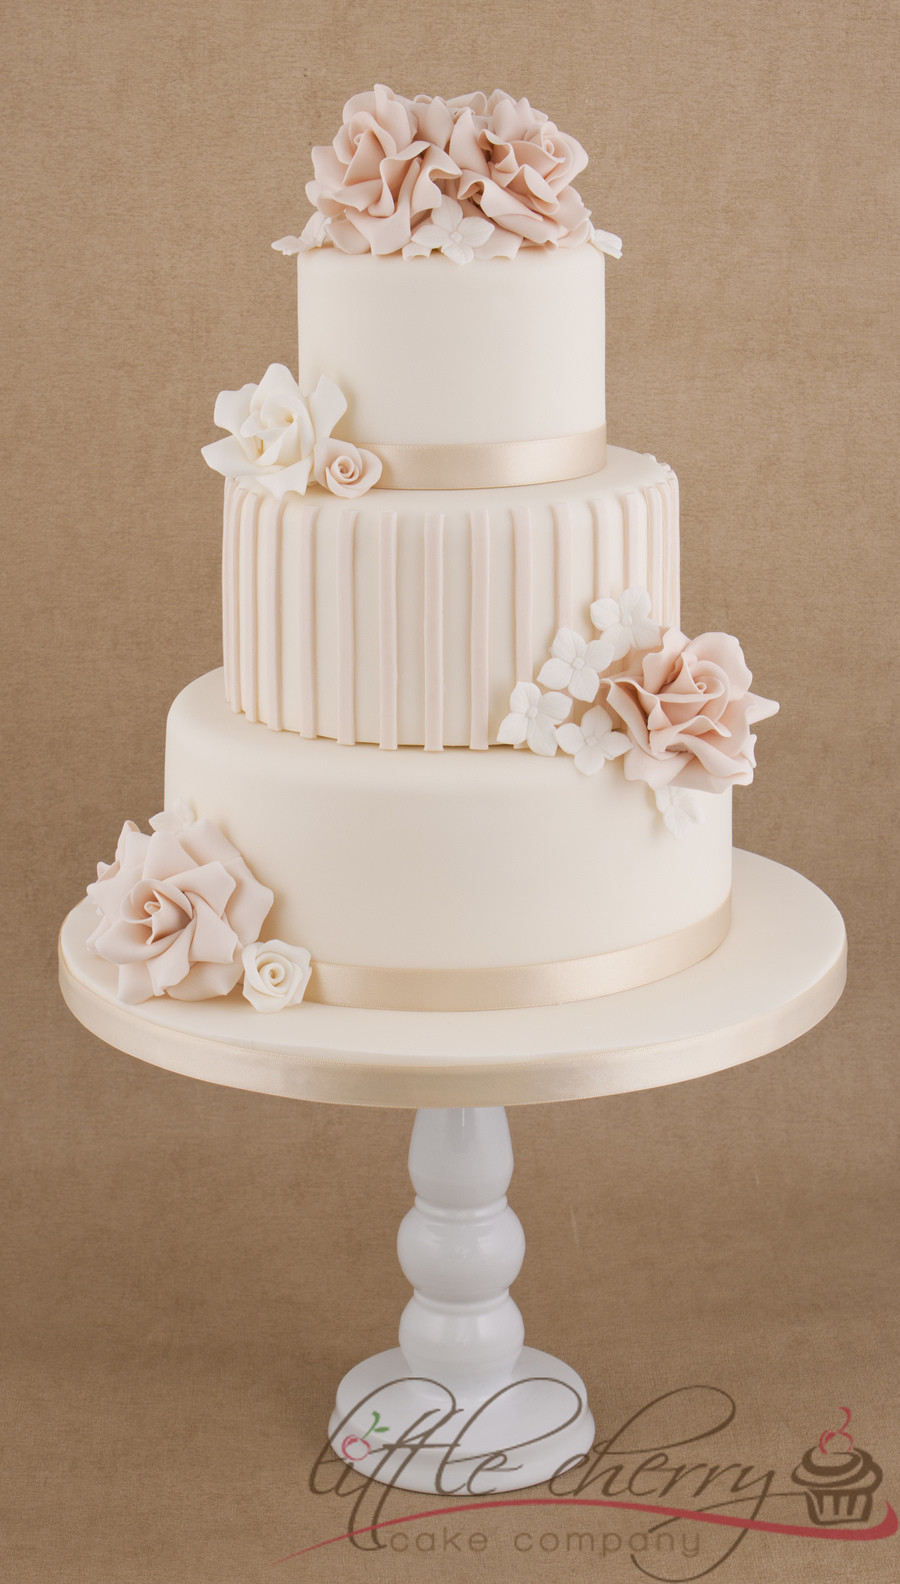 Three Tear Wedding Cakes  Roses And Stripes 3 Tier Wedding Cake CakeCentral